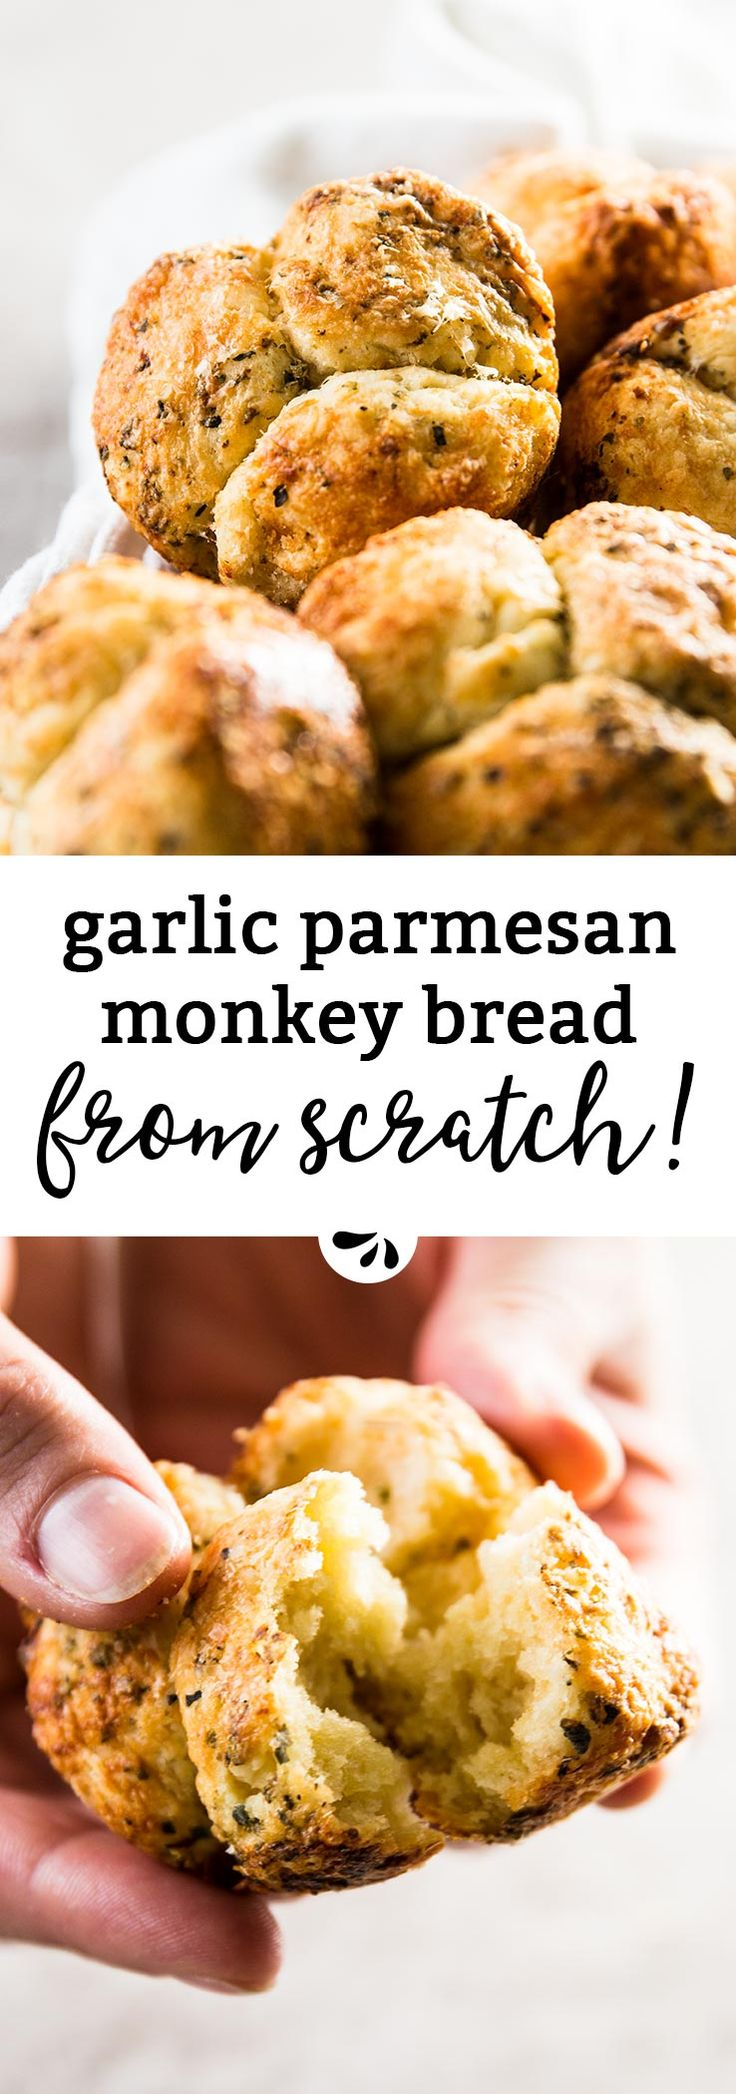 This Homemade Mini Garlic Parmesan Monkey Bread recipe is super simple, yet makes the most delicious little garlic breads! Serve them along a special dinner party or as part of a backyard BBQ or summer potluck - everyone will ask you for the recipe! The homemade biscuit dough comes together in a few easy steps. Then it gets coated in the most amazing garlic herb butter and in plenty of parmesan cheese.  These are perfectly portioned to feed a crowd. You'll probably need to make a double…